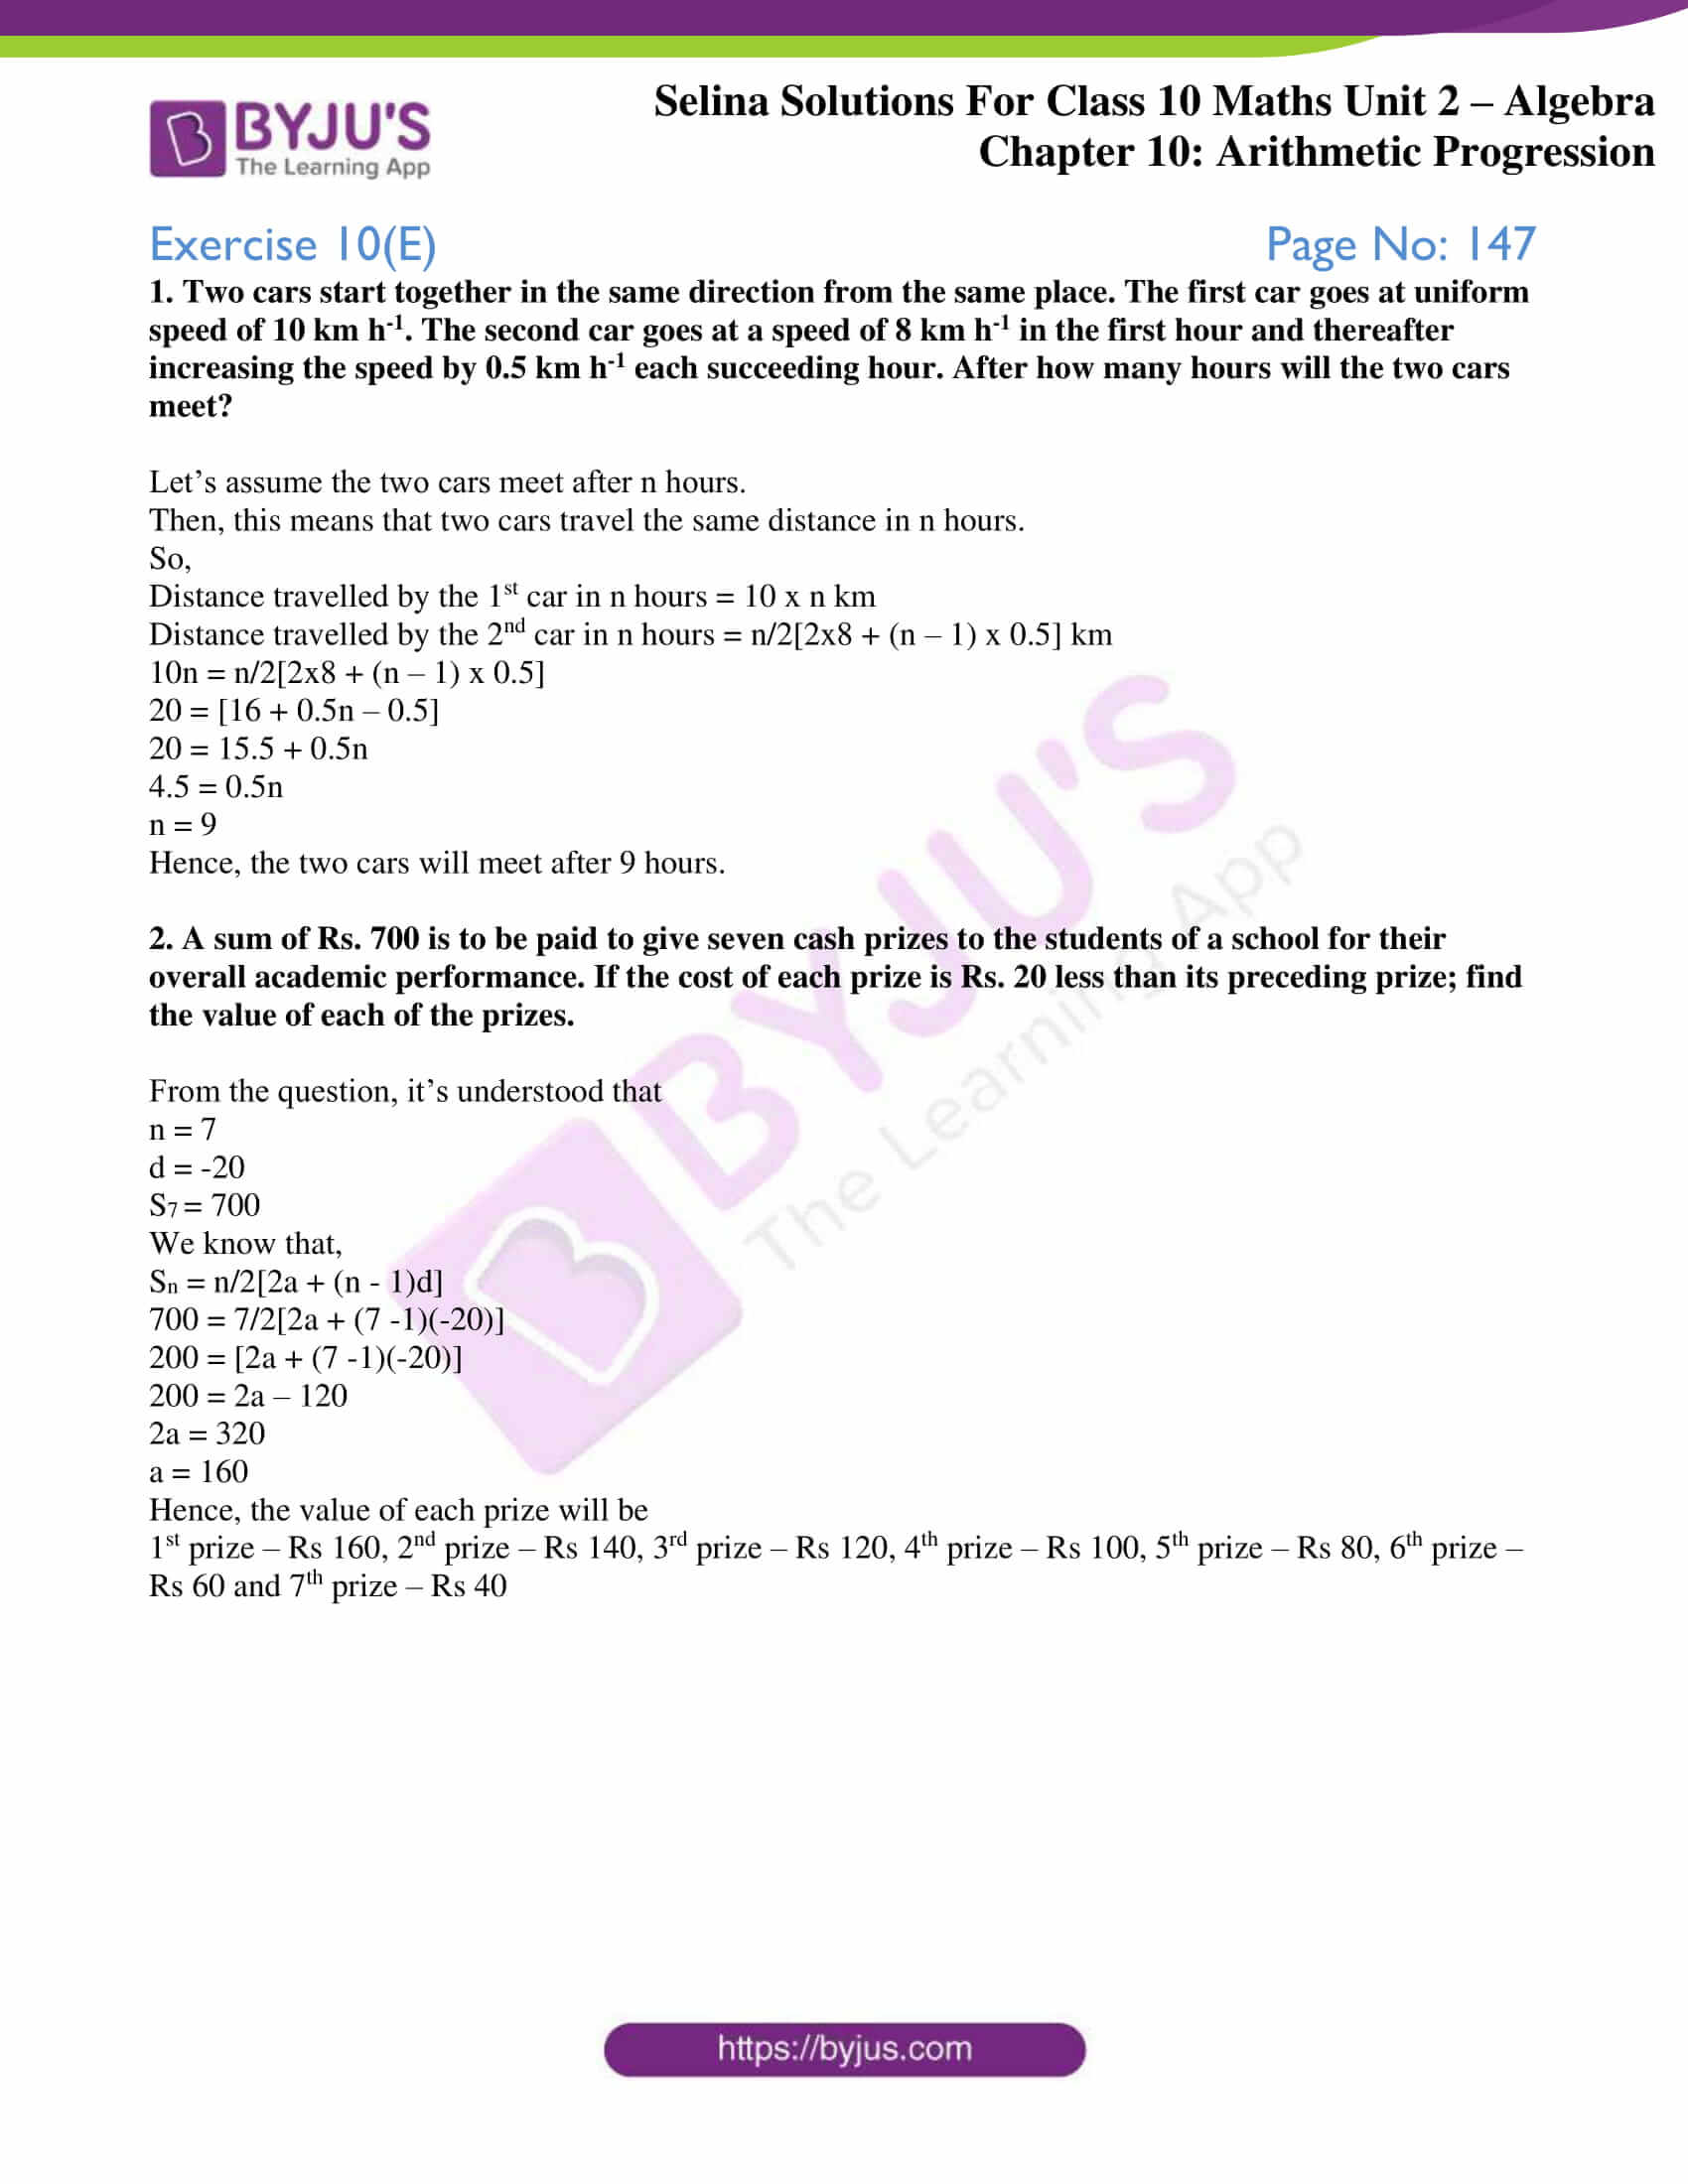 selina solution concise maths class 10 chapter 10 ex e 1